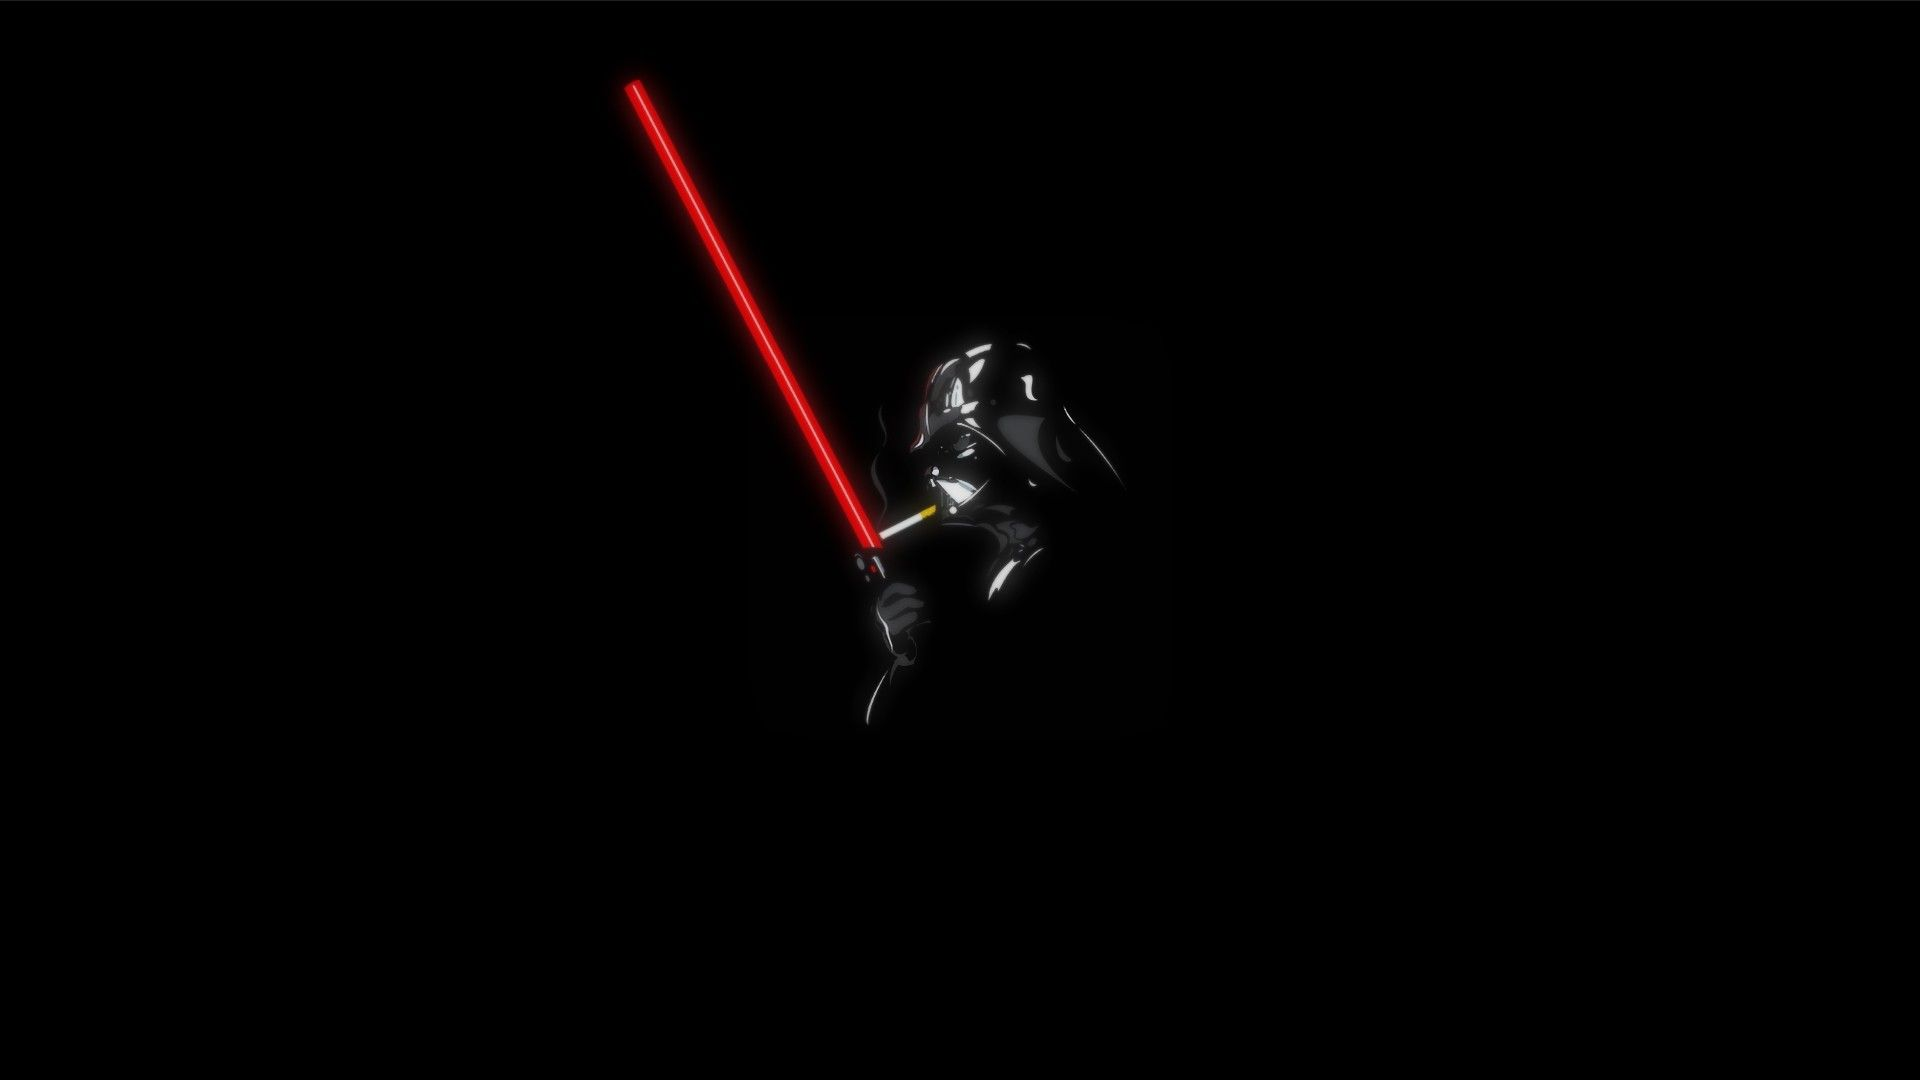 Star Wars Red Wallpapers Top Free Star Wars Red Backgrounds Wallpaperaccess